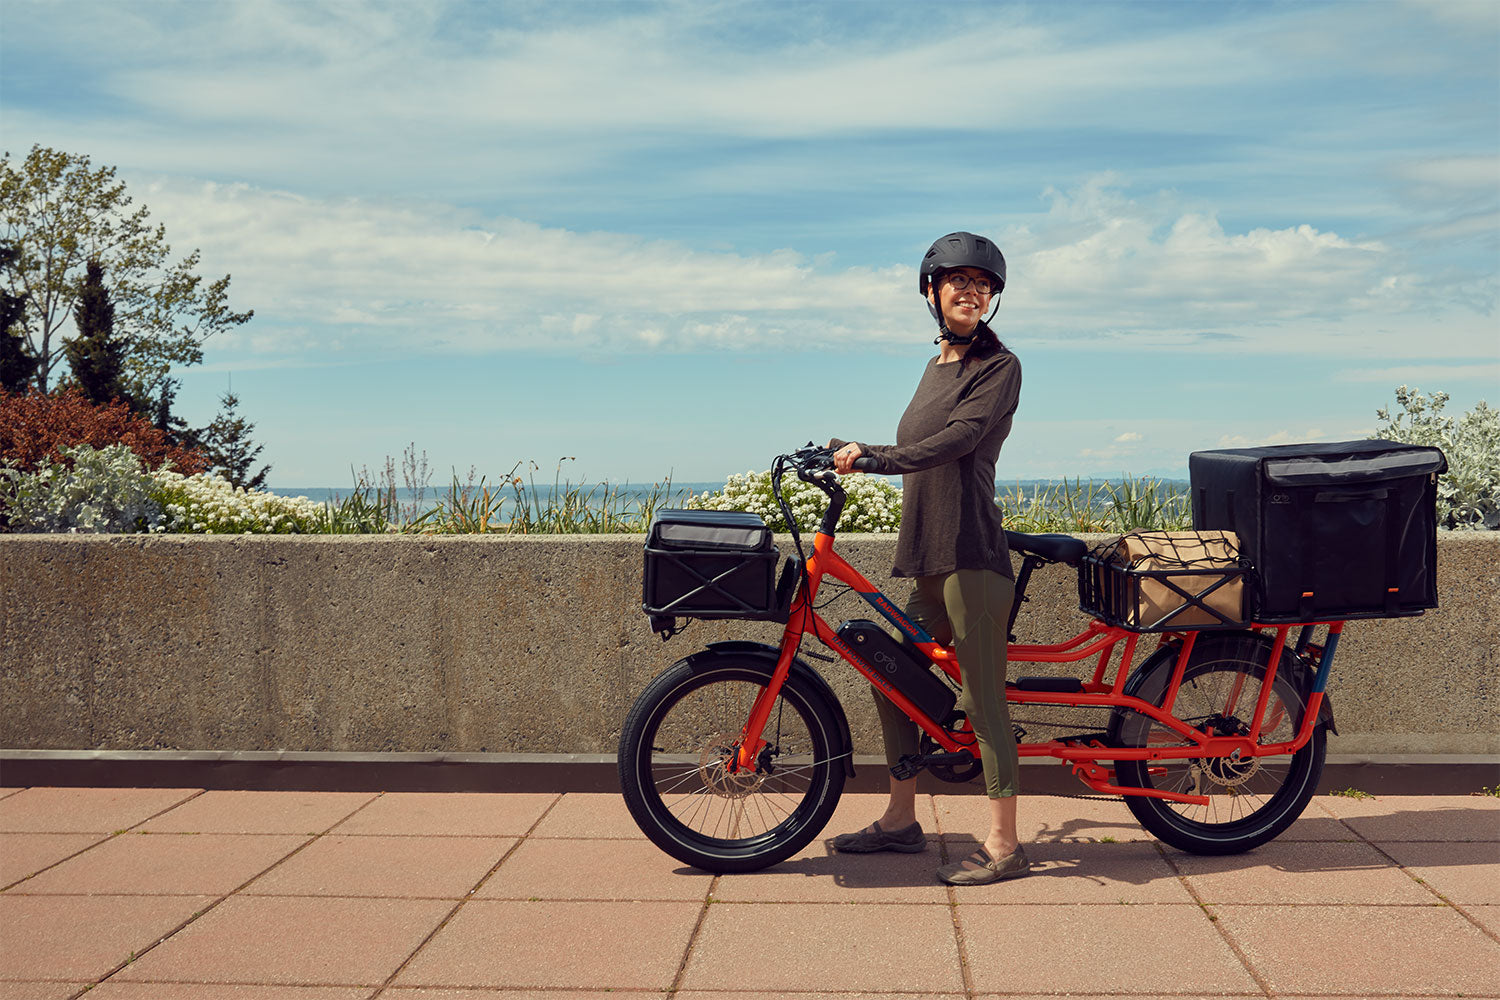 Delivery person with RadWagon 4 e-bike